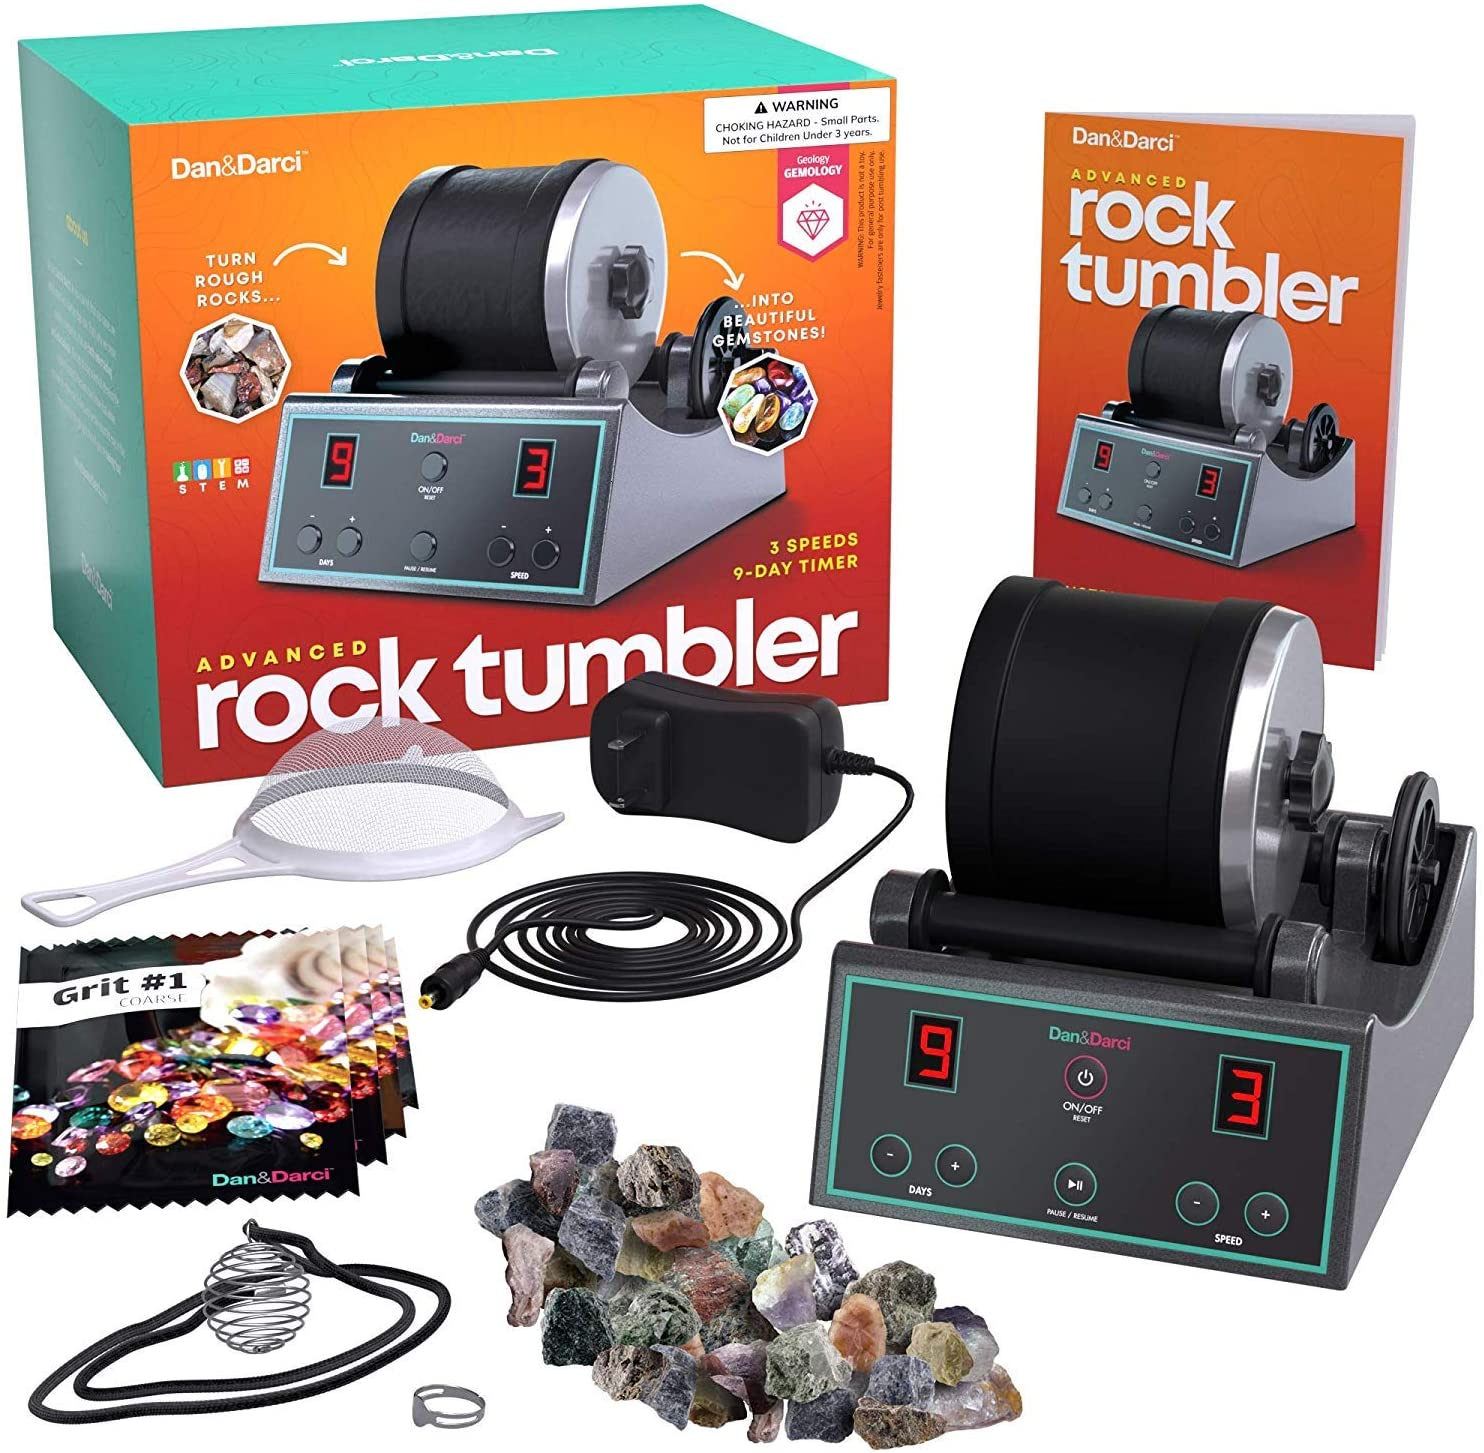 Rock Tumbler Kit{ }($99.99) Ready, set, tumble! Little naturalists will adore turning rough rocks into polished gems. It is a bit of a commitment - rocks tumble for 9 days - but we all have extra time right now, so why not? (Image: Amazon)